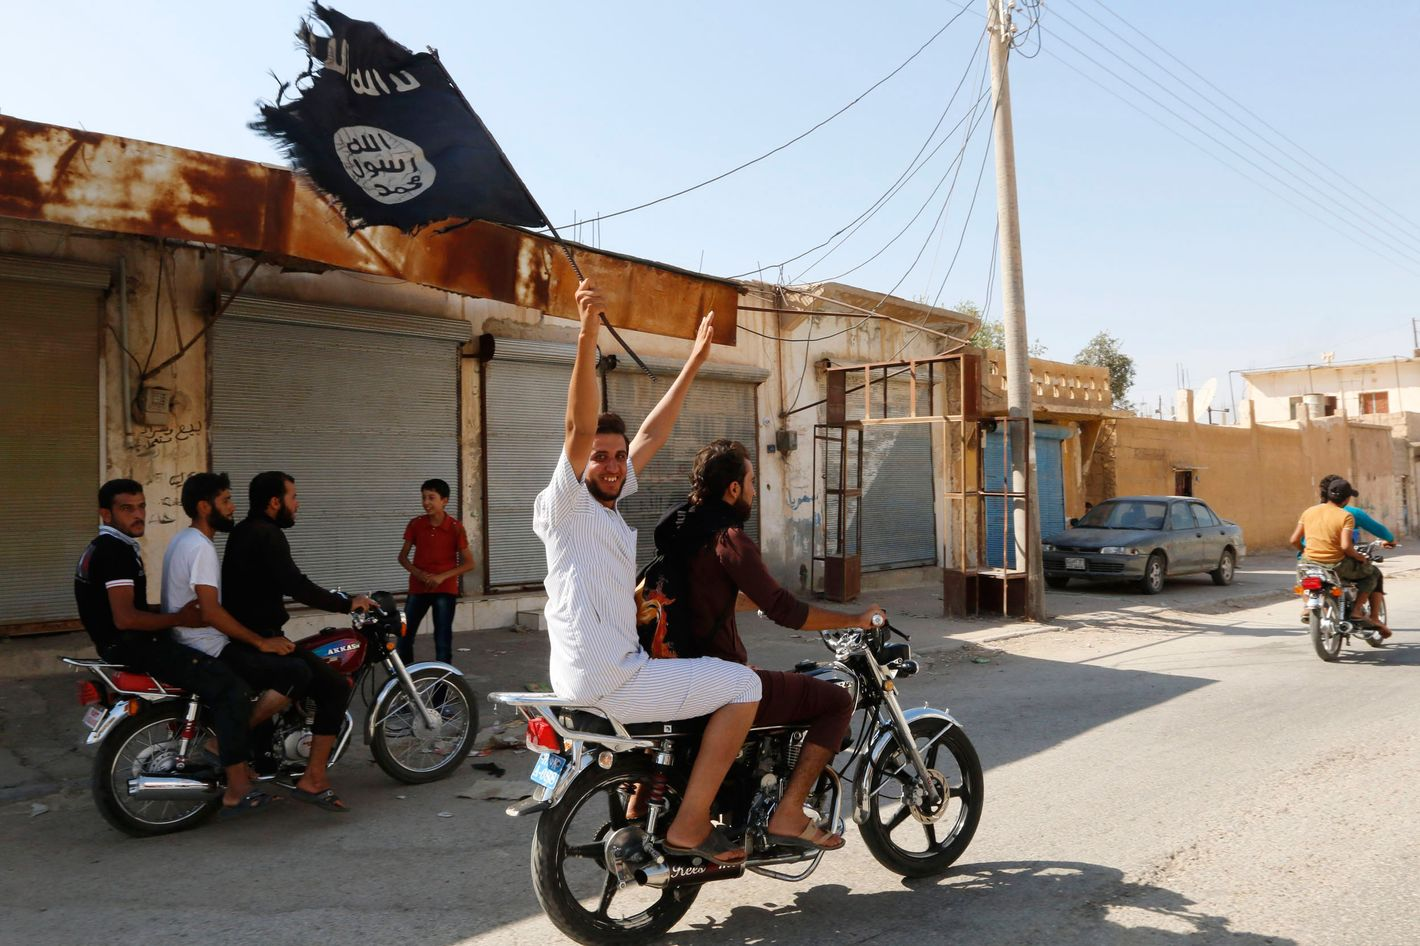 A resident of Tabqa city touring the streets on a motorcycle waves an Islamist flag in celebration after Islamic State militants took over Tabqa air base, in nearby Raqqa city August 24, 2014. Islamic State militants stormed the air base in northeast Syria on Sunday, capturing most of it from government forces after days of fighting over the strategic location, a witness and a monitoring group said. Fighting raged inside the walls of the Tabqa air base, the Syrian army's last foothold in an area otherwise controlled by IS, which has seized large areas of Syria and Iraq. REUTERS/Stringer   (SYRIA - Tags: POLITICS CIVIL UNREST CONFLICT TPX IMAGES OF THE DAY) - RTR43J48